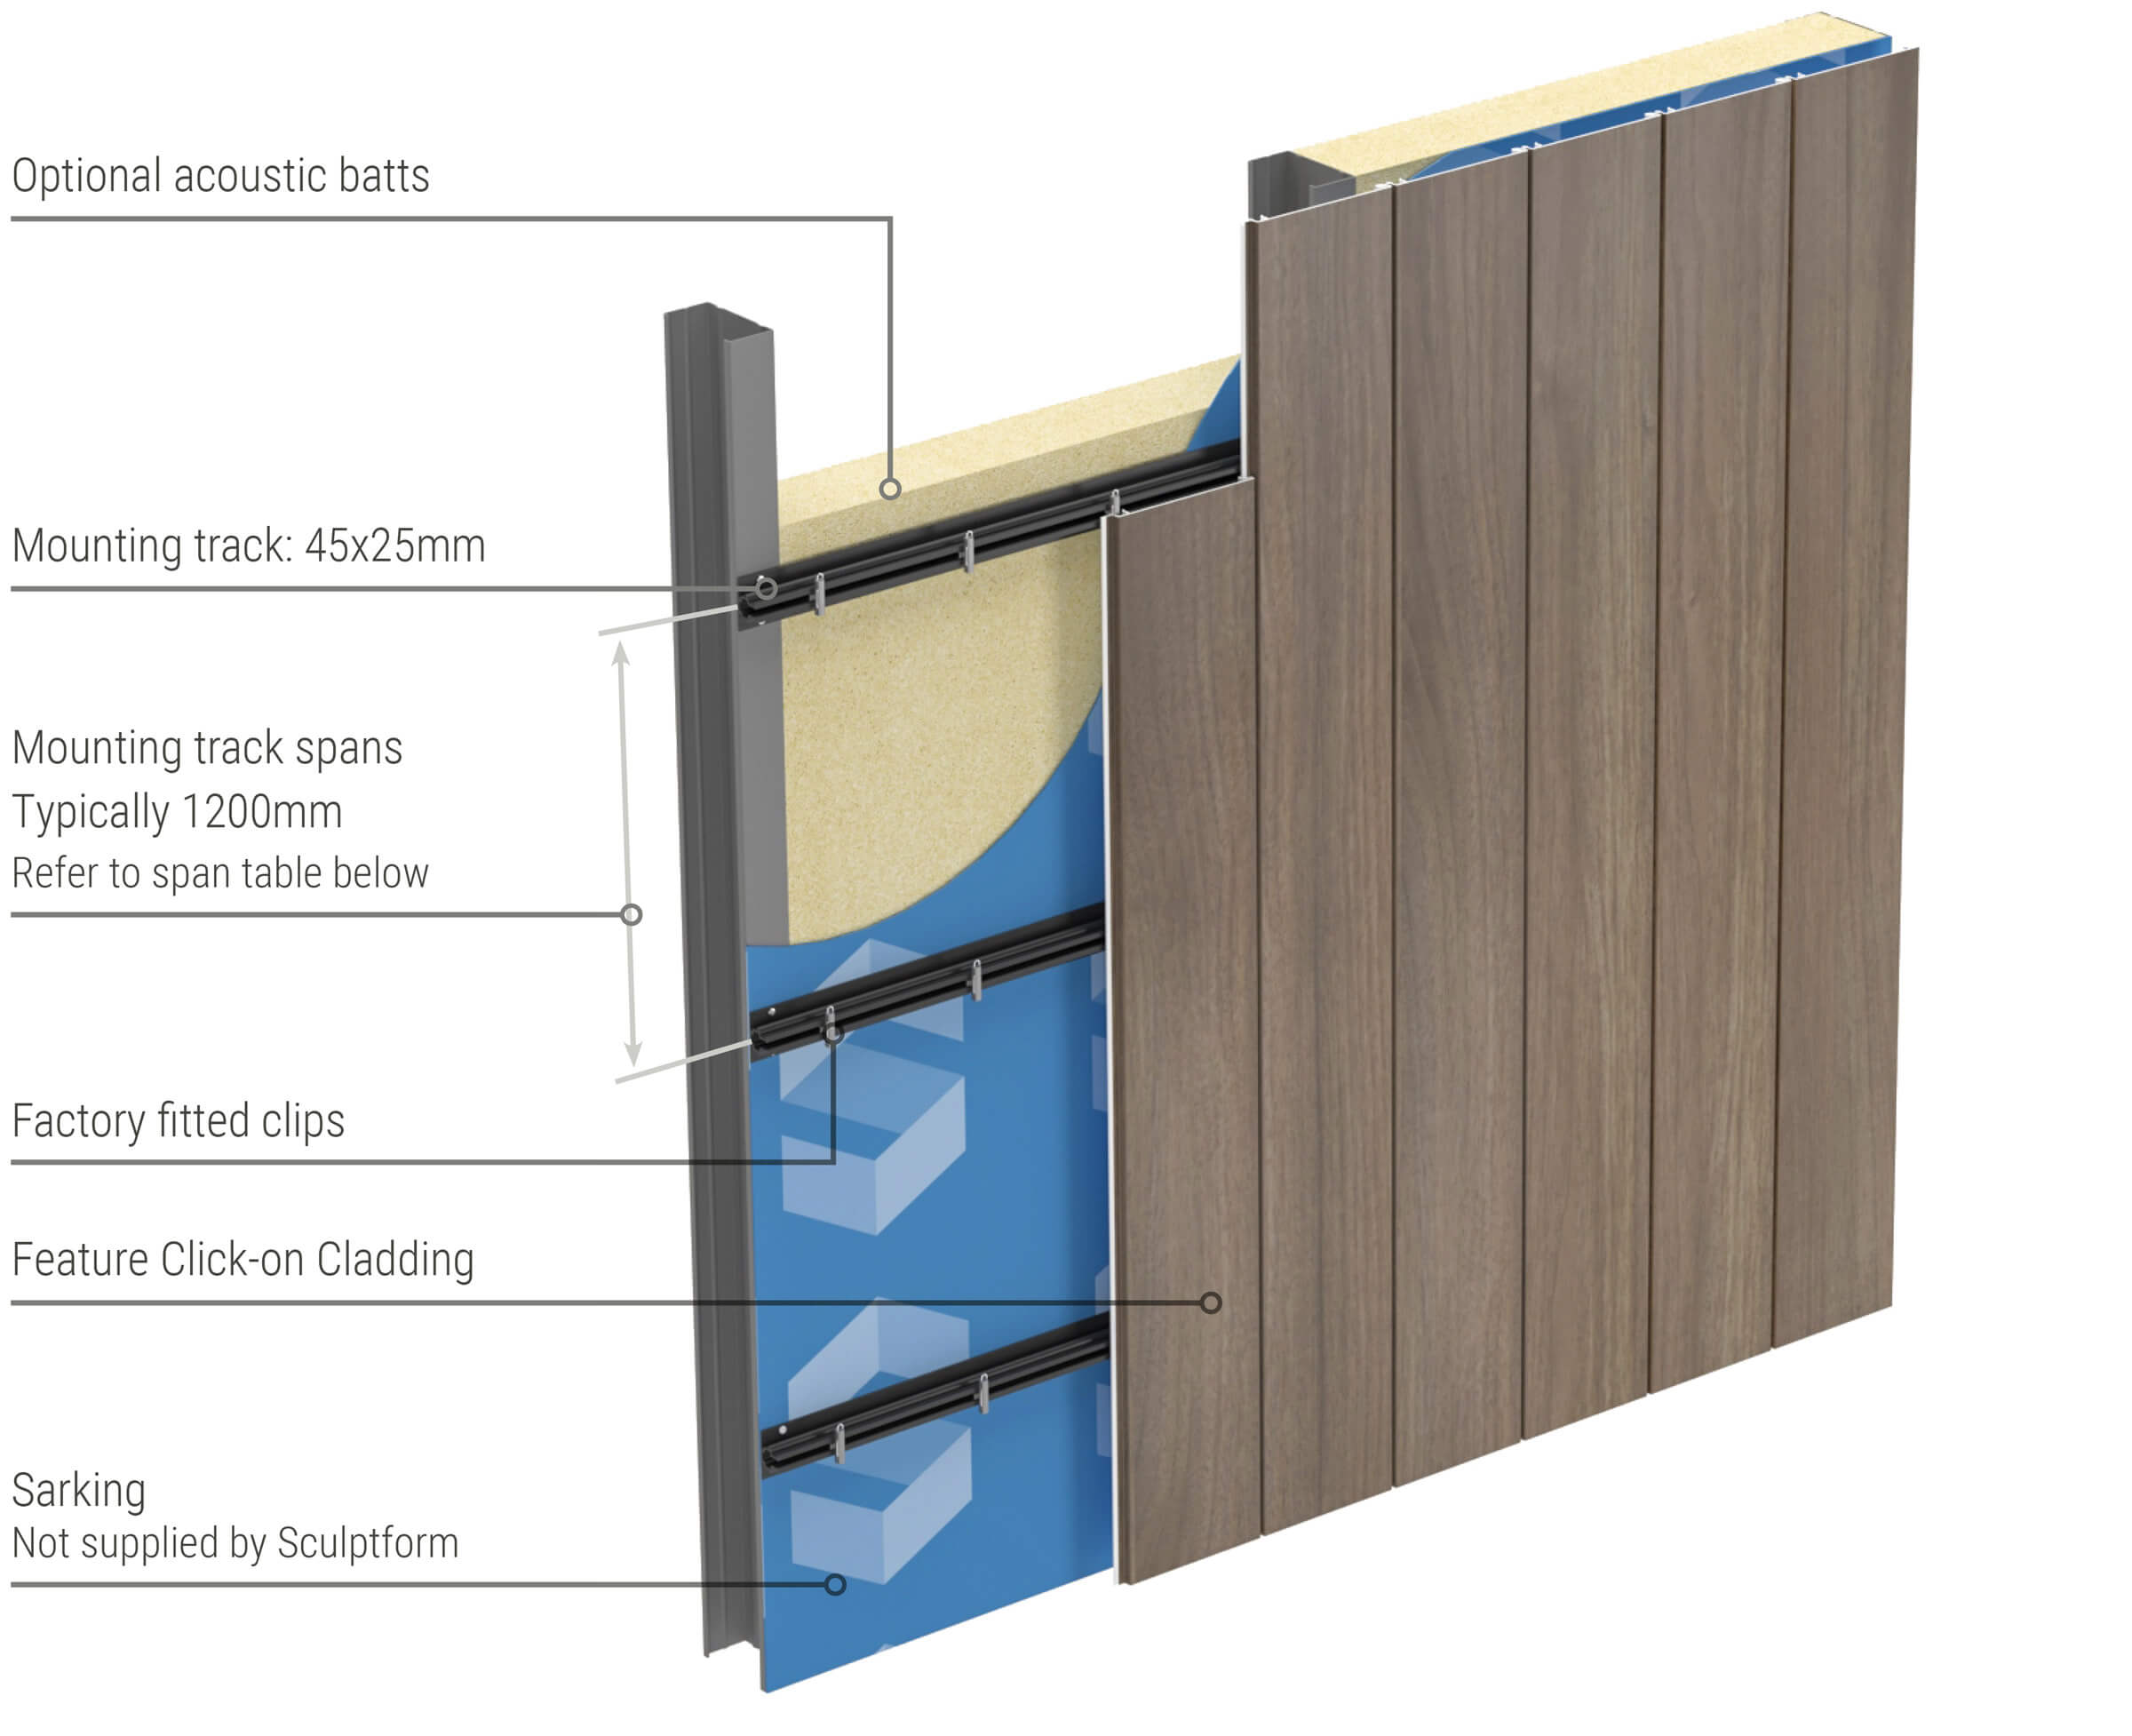 Metal Click-on Cladding typical wall setup